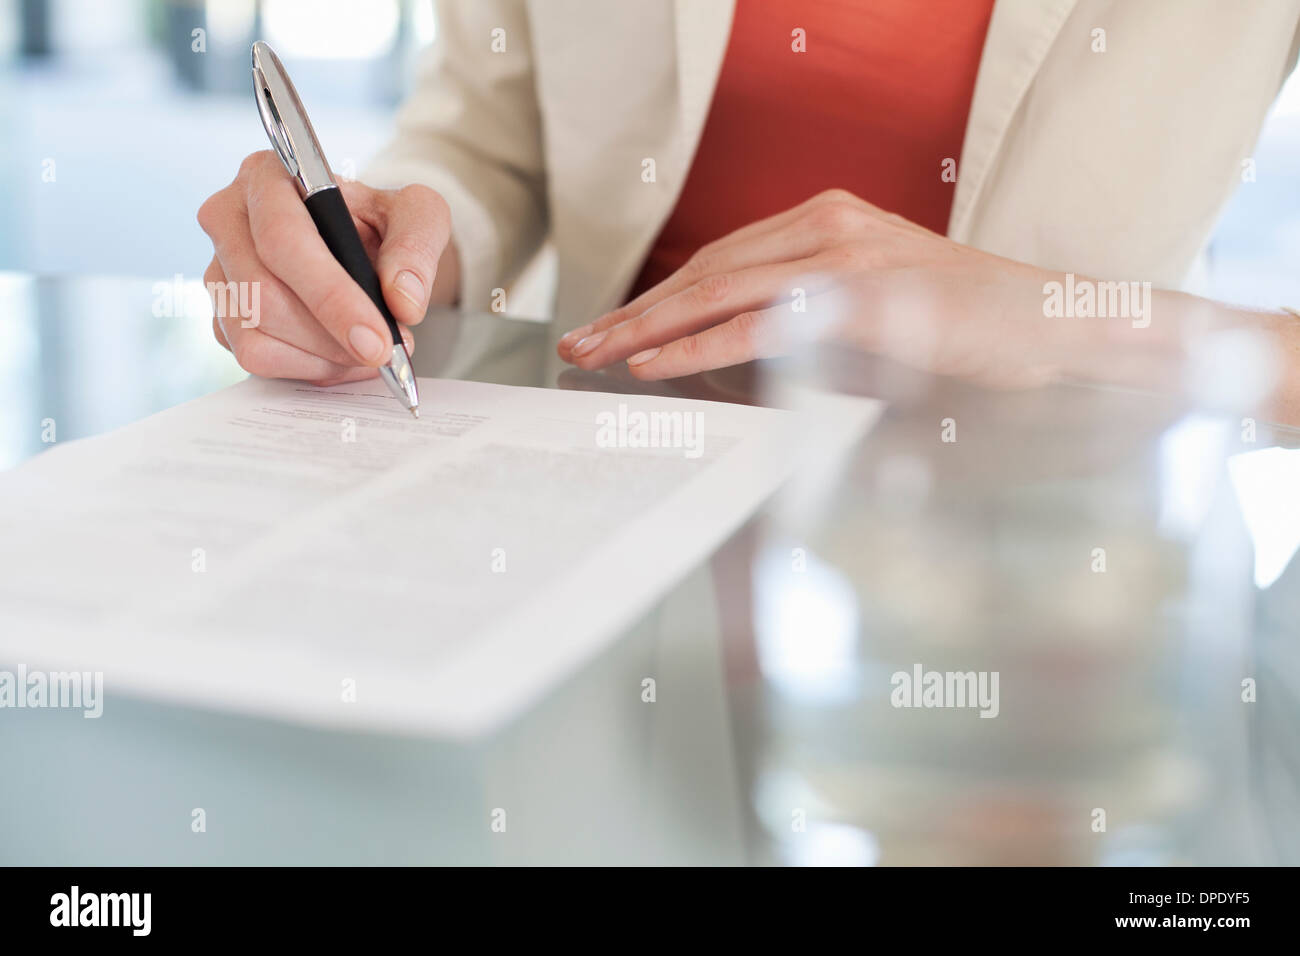 Cropped image of businesswoman signing paperwork - Stock Image